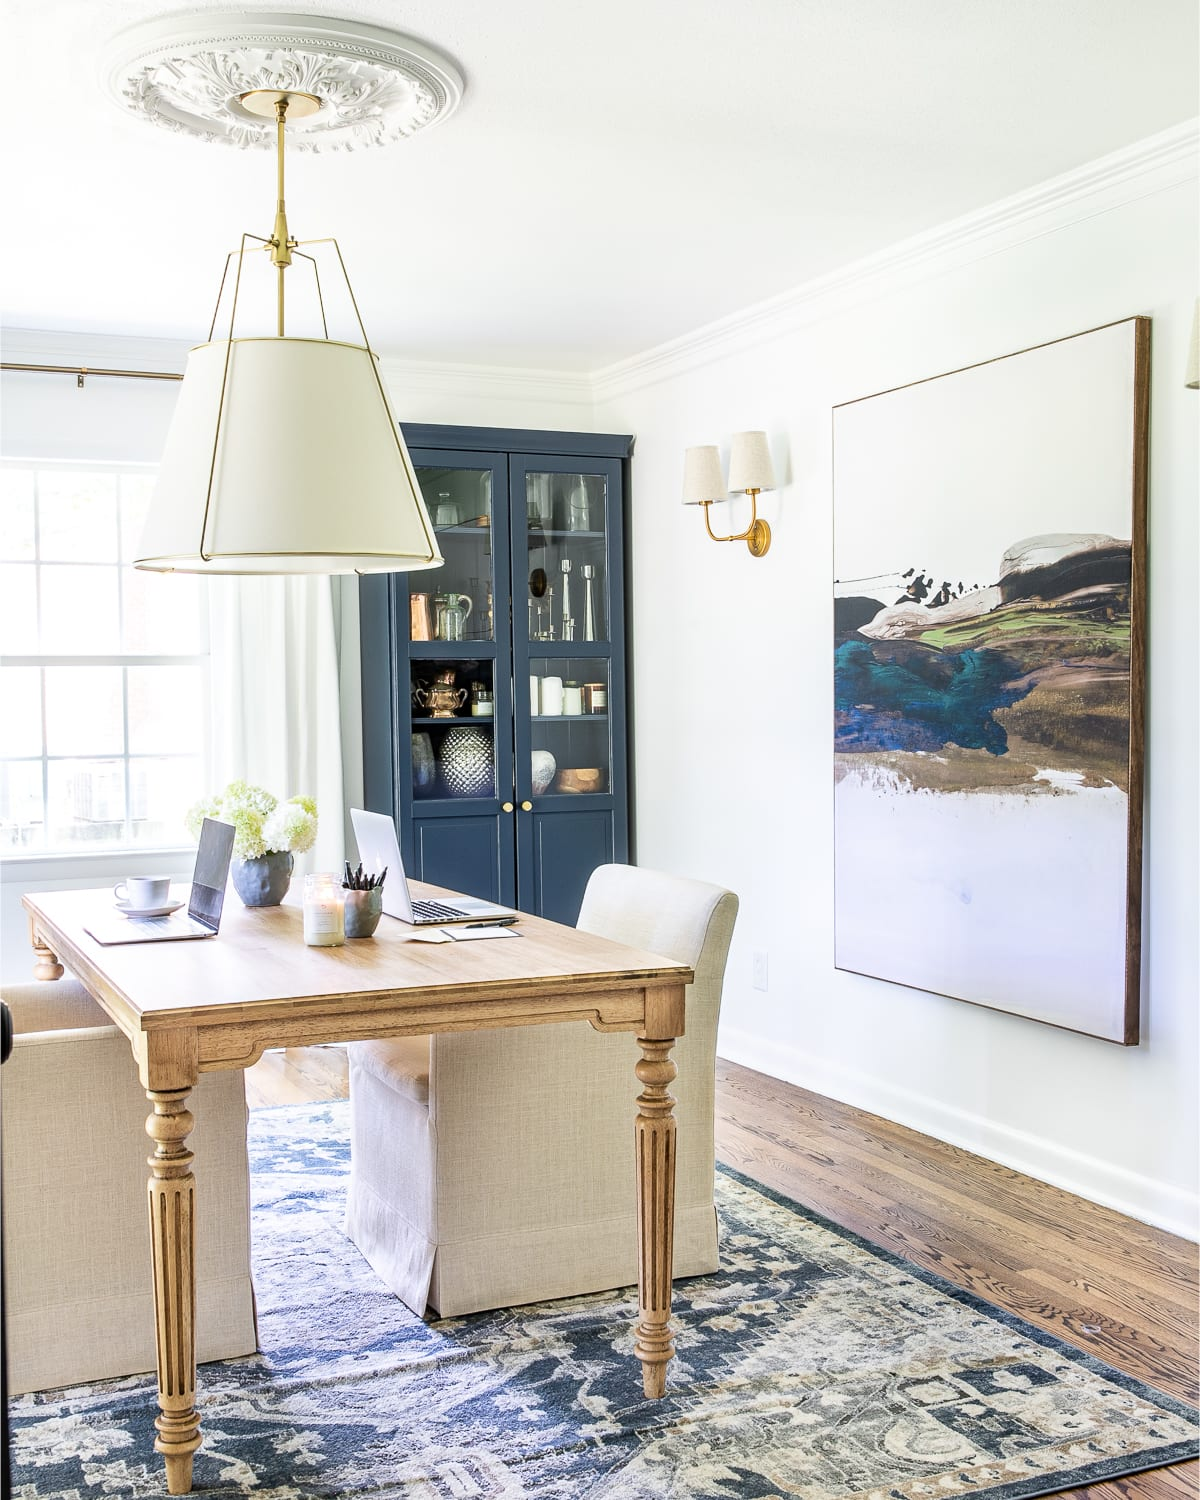 home office decor with work table, pendant light, large scale art, upholstered rolling desk chairs, and storage cabinets